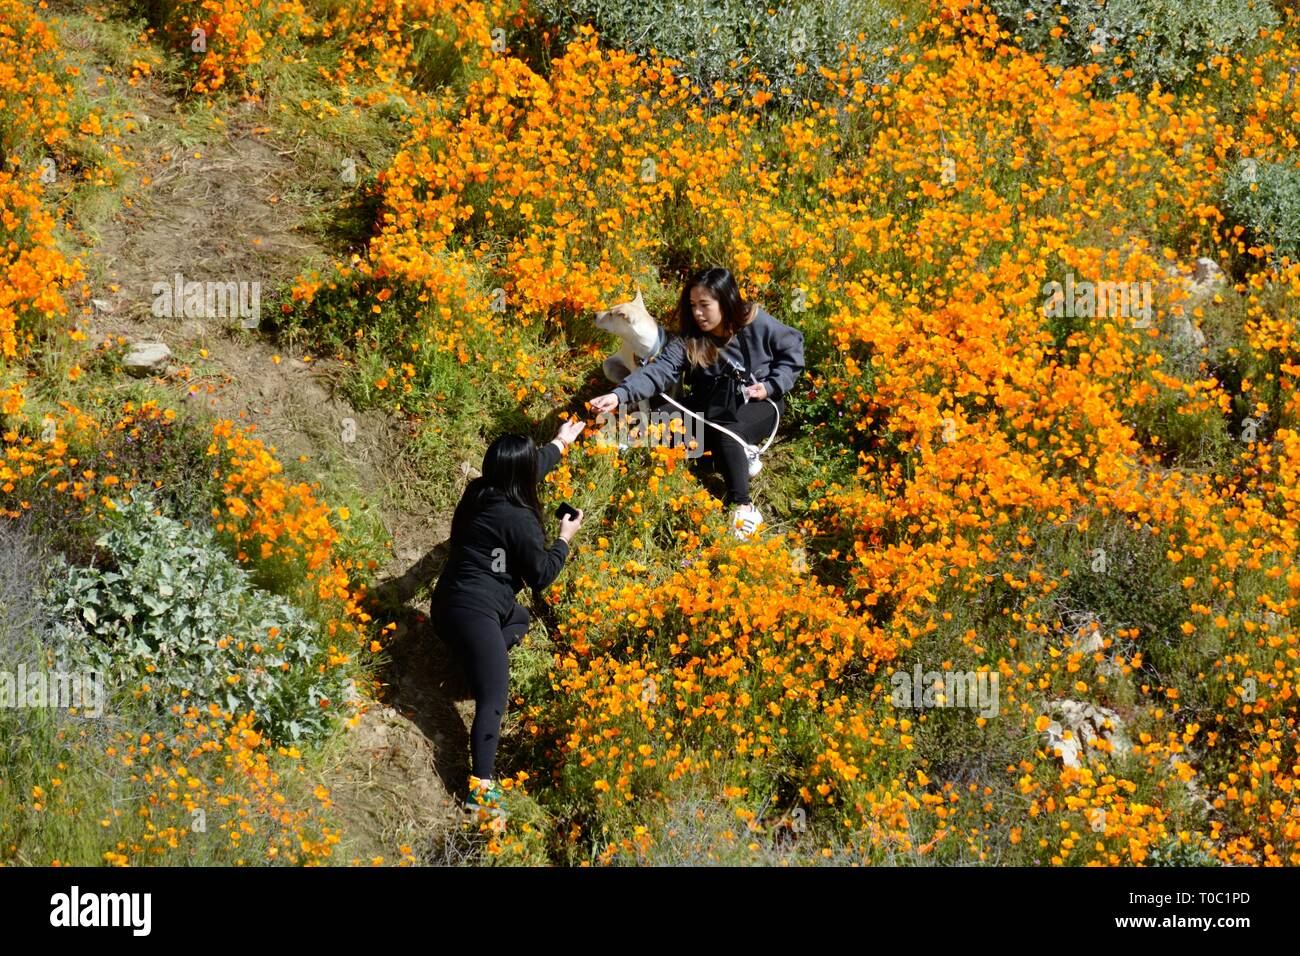 Lake Elsinore, CA / USA - March 9 2019: Two women and a dog trample on fragile Golden Poppies while taking photos at the now-closed Walker Canyon. - Stock Image